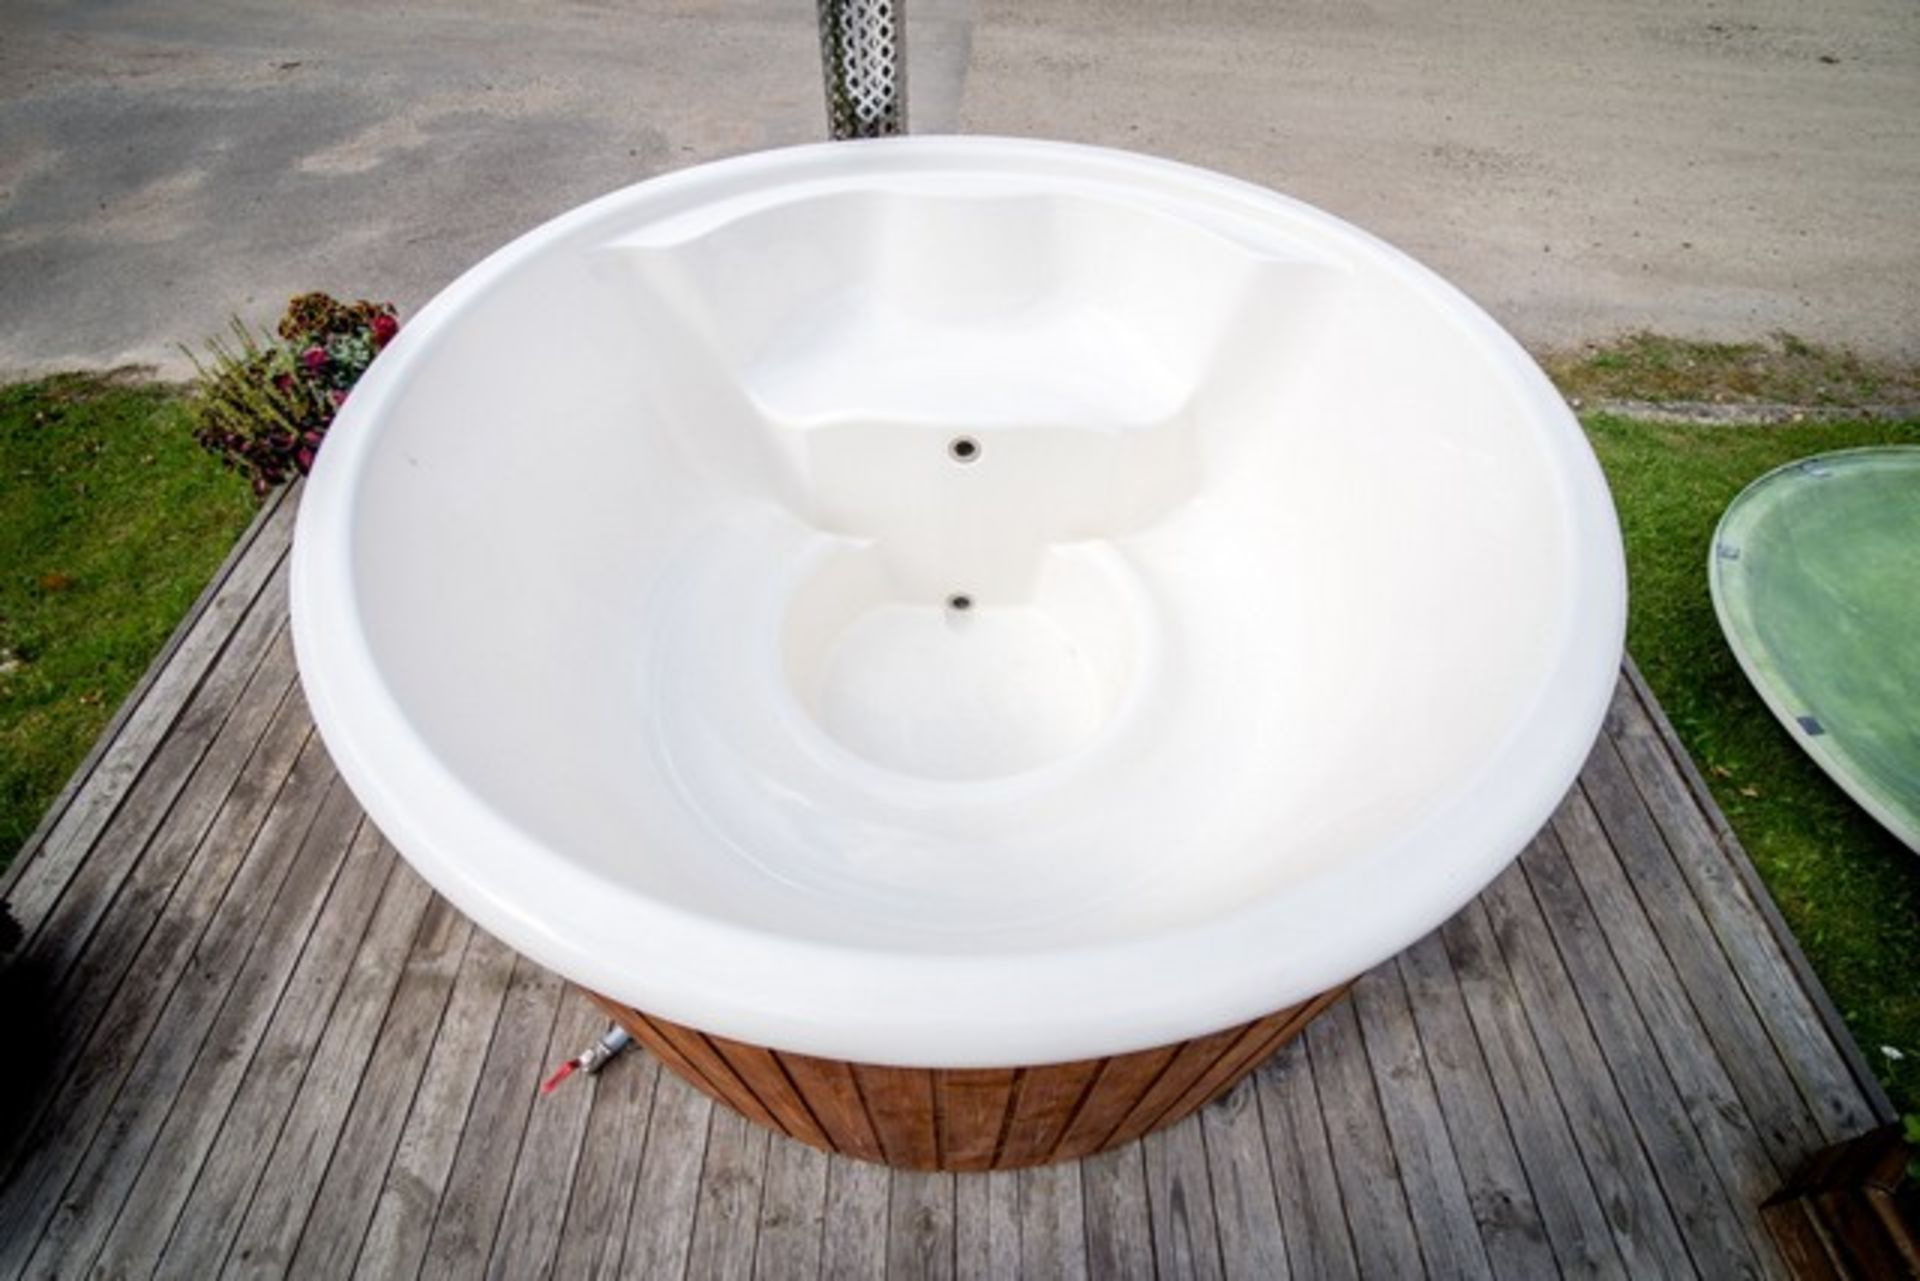 Lot 18005 - V Brand New 1.8m Fiberglass Hot Tub with Stainless Steel Heater and Chimney - Hot Tub Made from